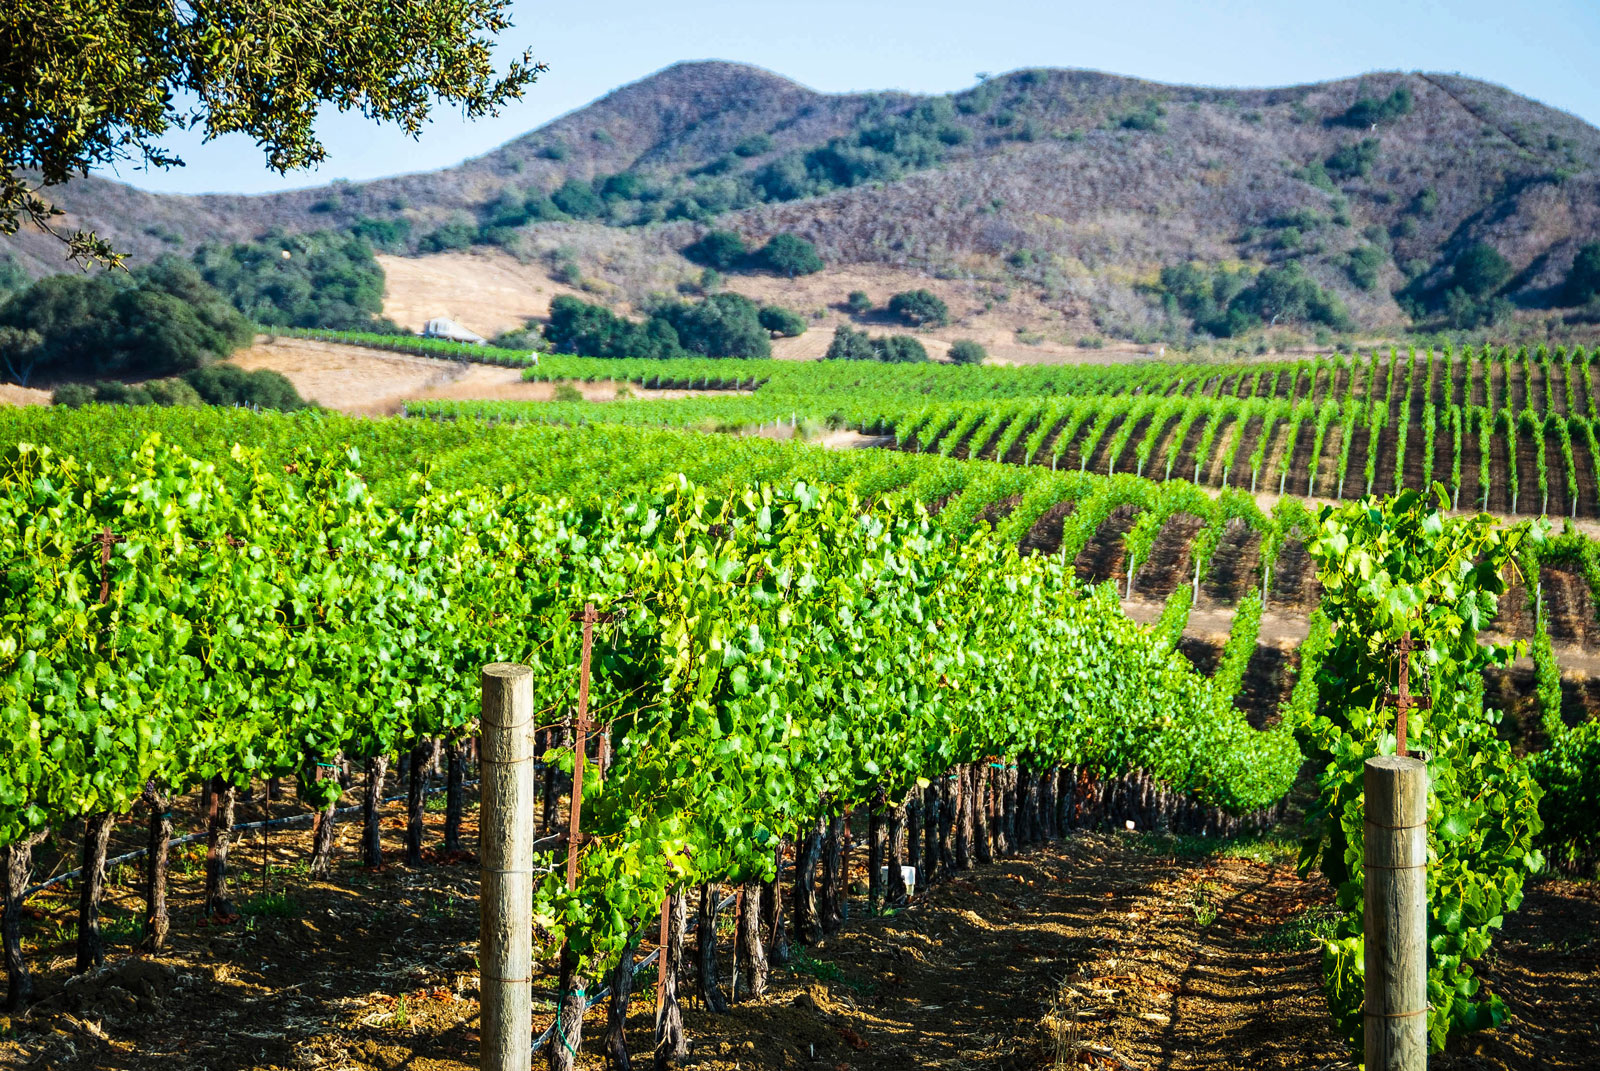 Vineyard in Santa Barbara County